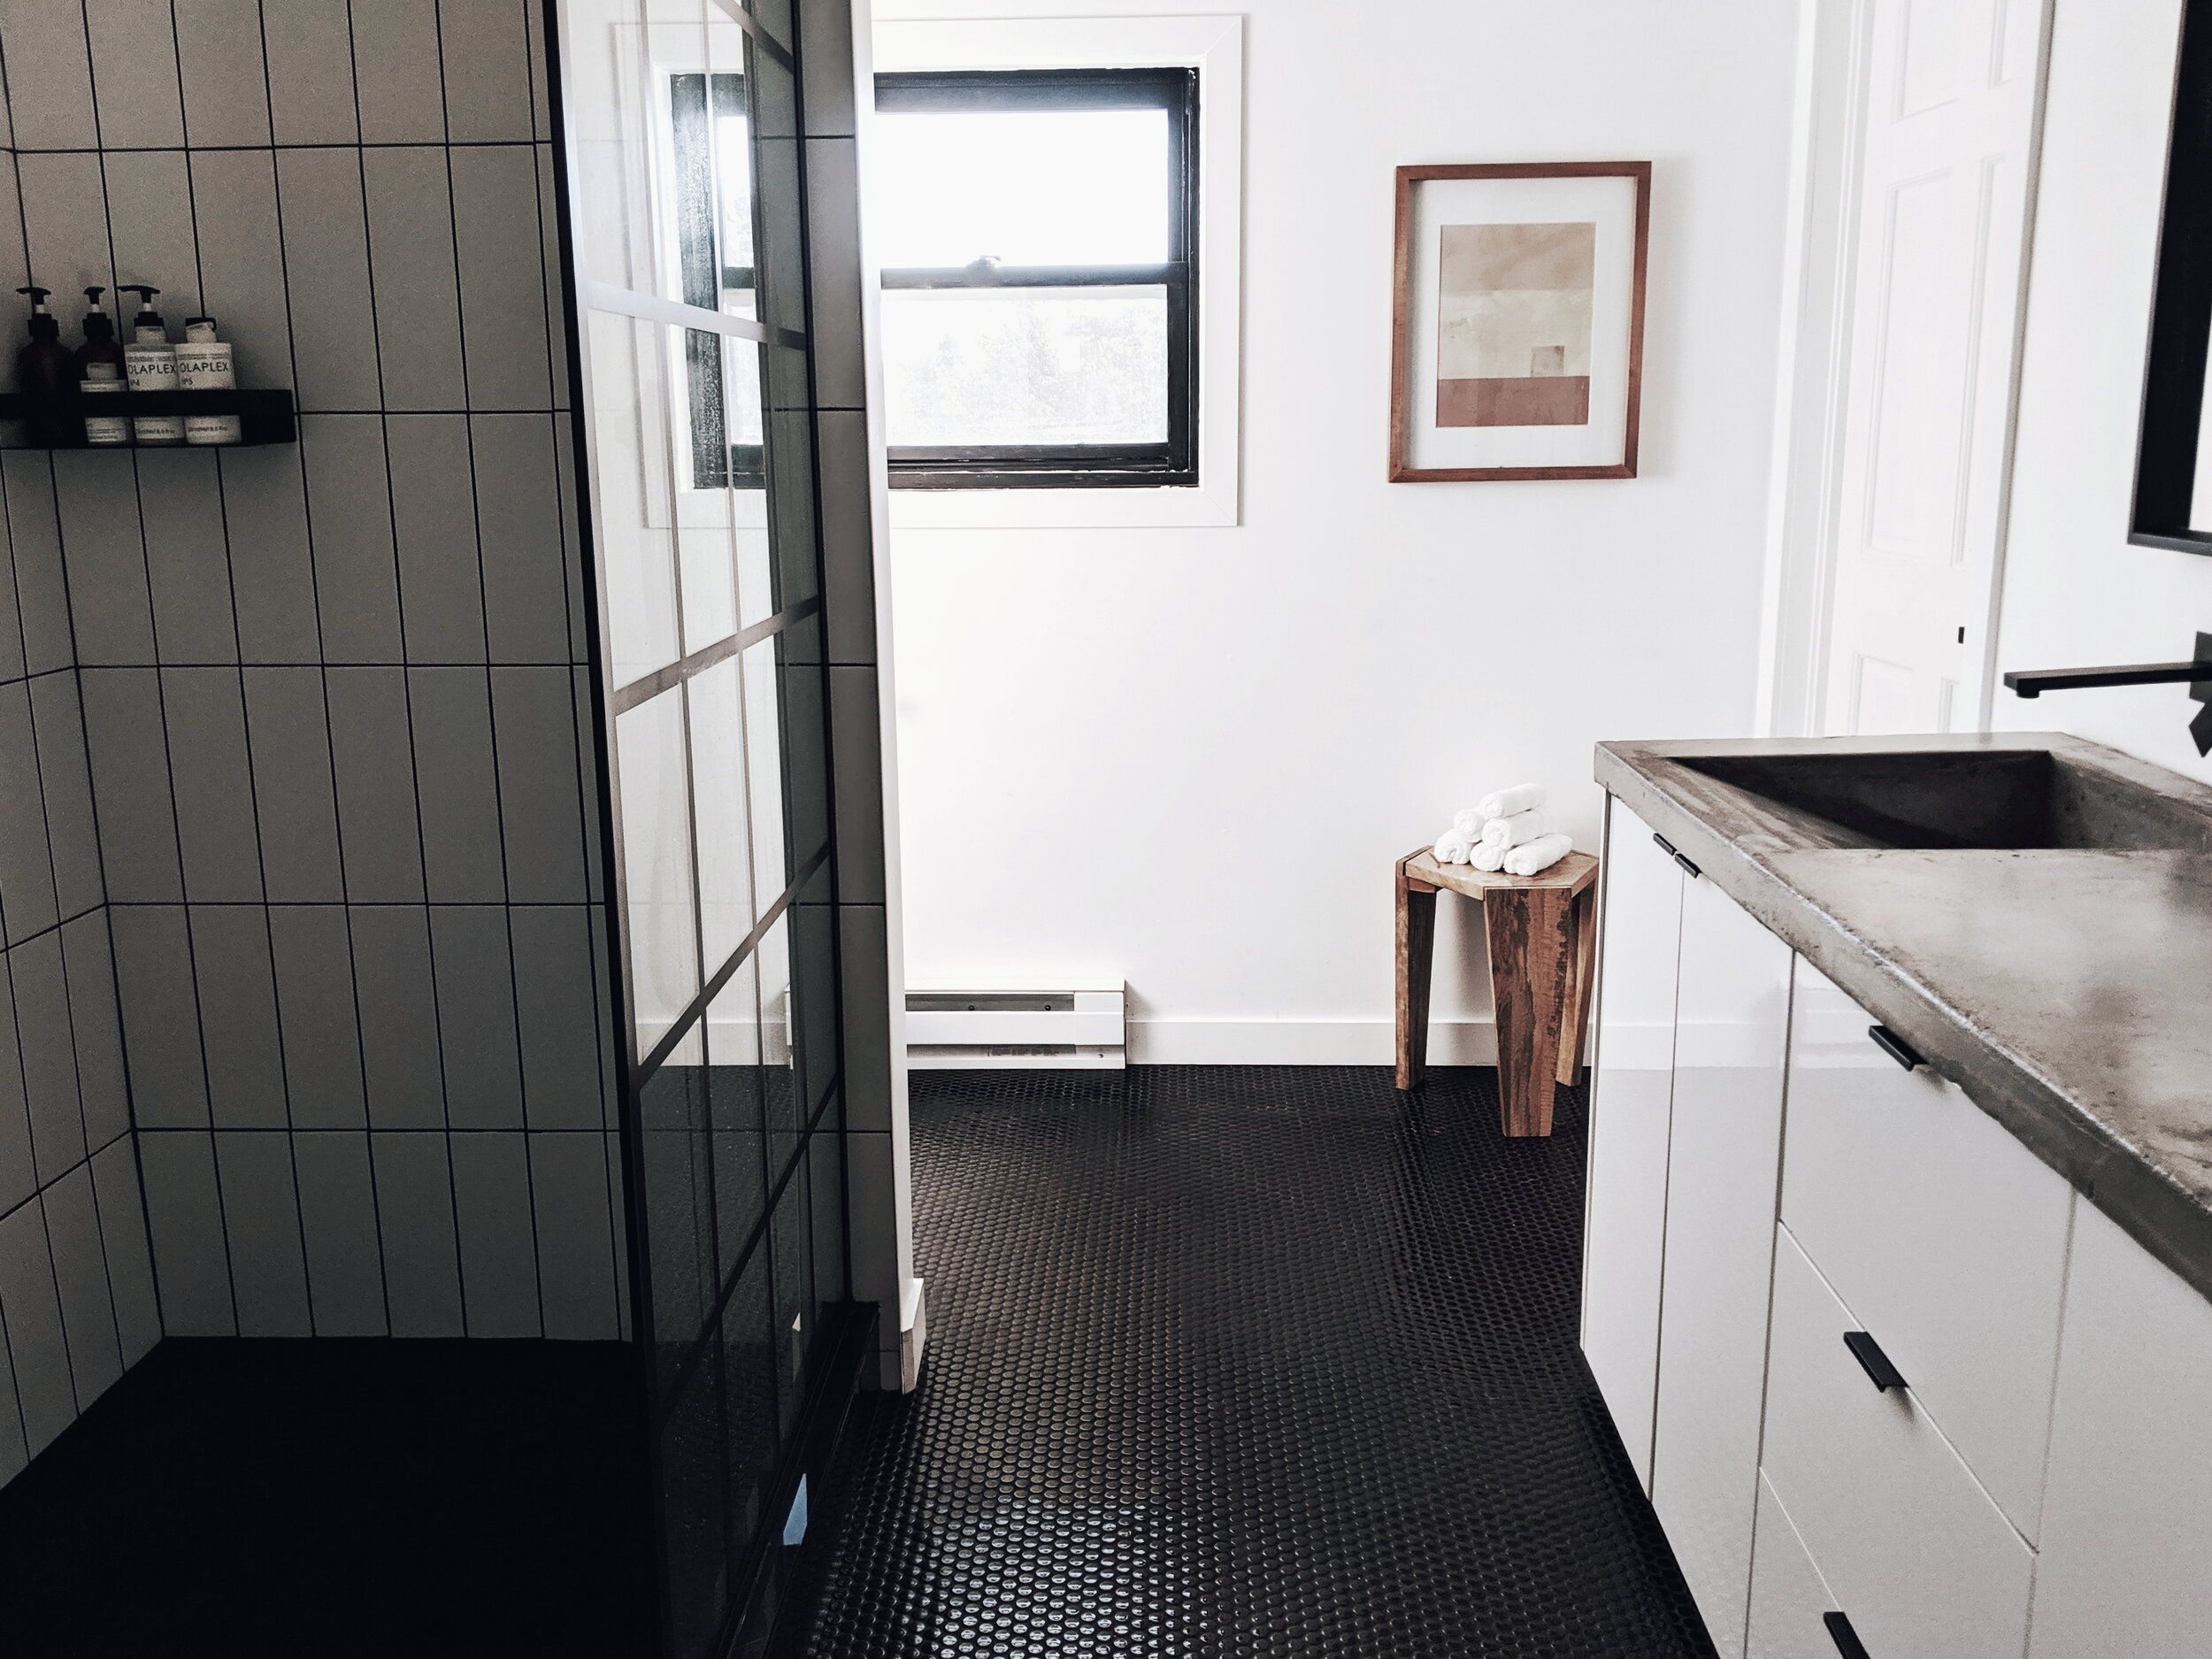 Home Series How To Get Black Grout Alliebeckwith In 2020 Window Trim Master Bathroom Renovation Black Window Trims